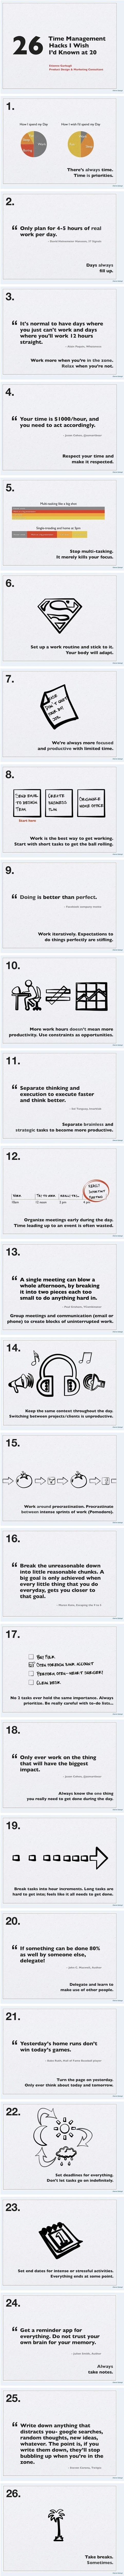 26 Time Management Hacks I Wish I'd Known At 20